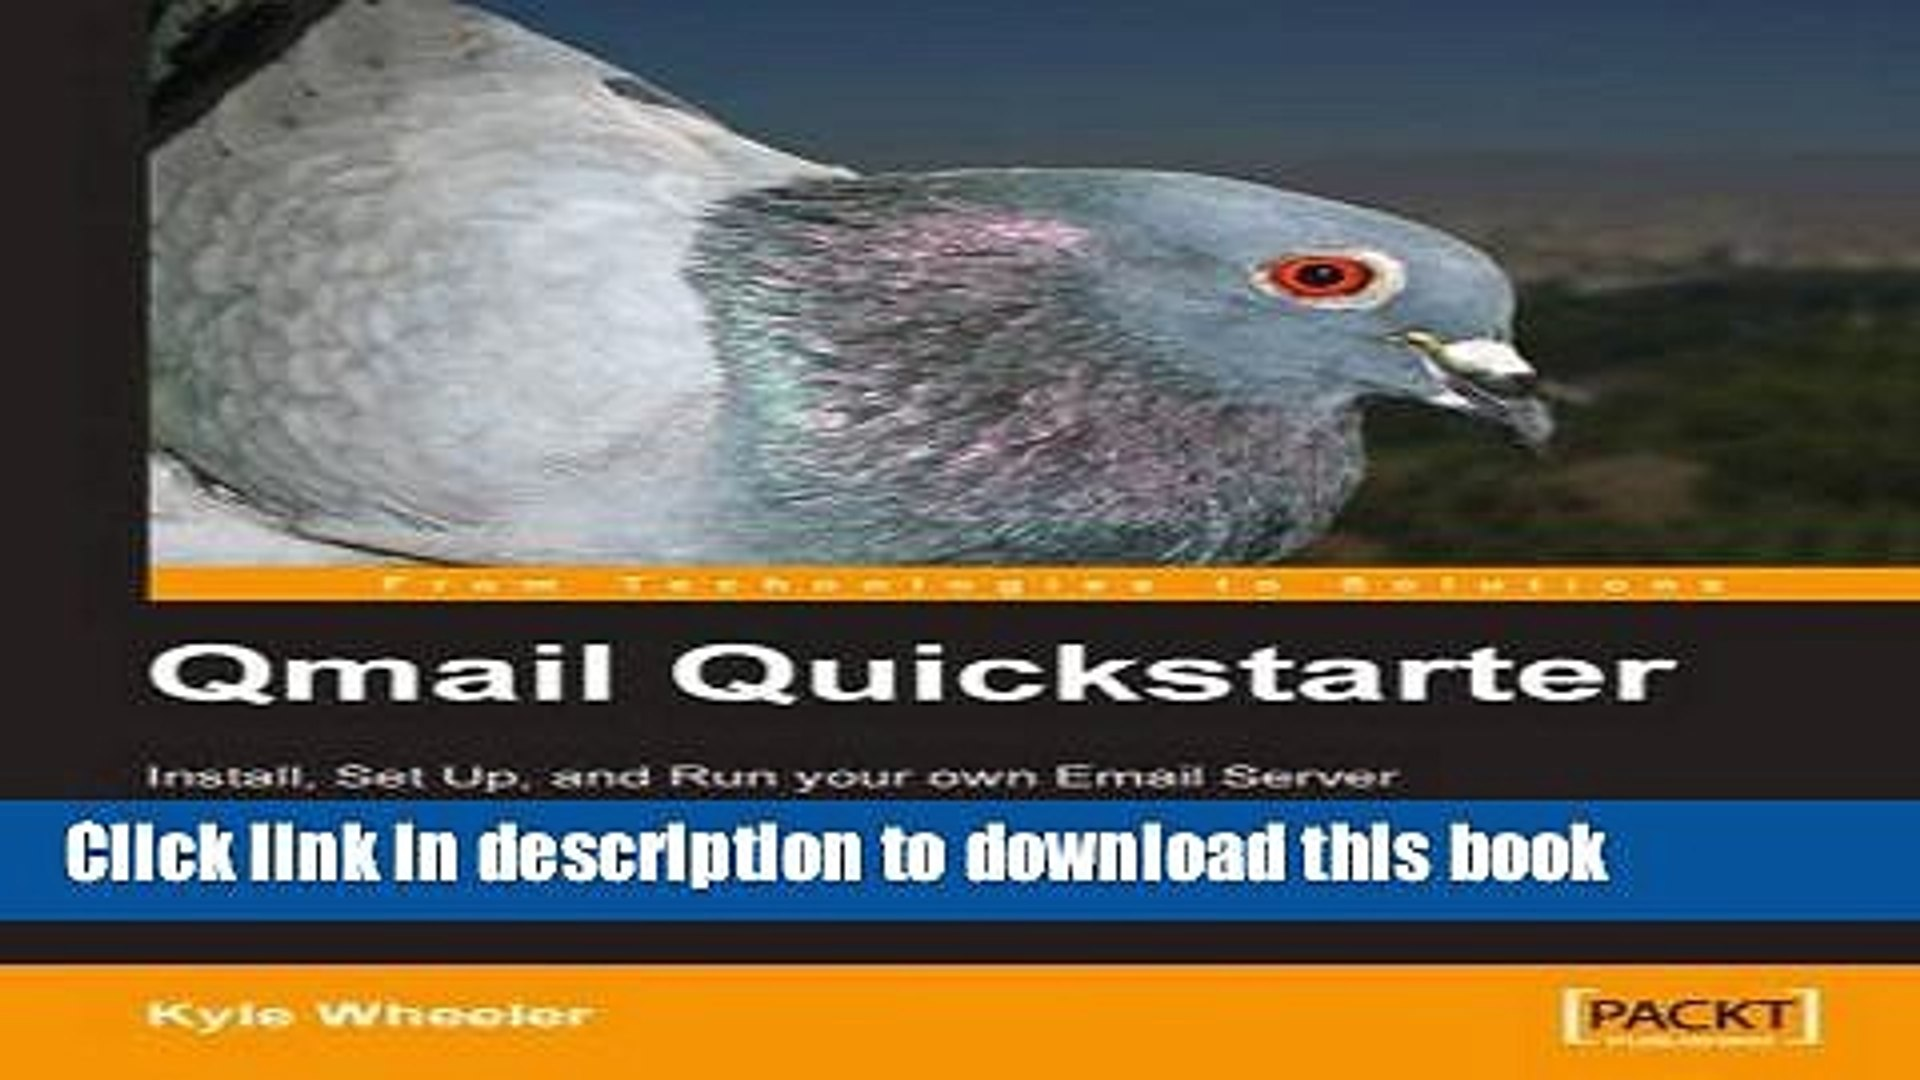 Books Qmail Quickstarter: Install, Set Up and Run your own Email Server: A fast-paced and